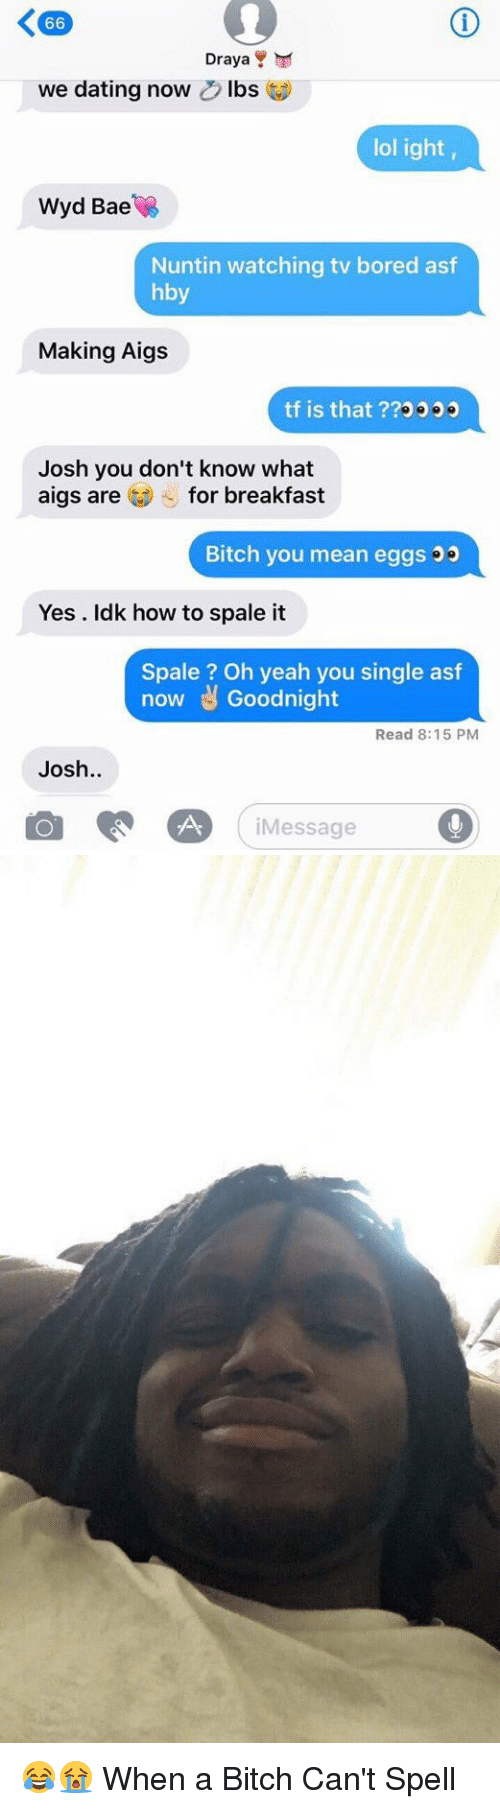 Joshing You: K 66  Draya  Y  we dating now  D lbs  lol ight,  Wyd Bae  Nuntin watching tv bored asf  hby  Making Aigs  tf is that  Josh you don't know what  aigs are for breakfast  Bitch you mean eggs  Yes Idk how to spale it  Spale Oh yeah you single asf  now Goodnight  Read 8:15 PM  Josh  Message 😂😭 When a Bitch Can't Spell